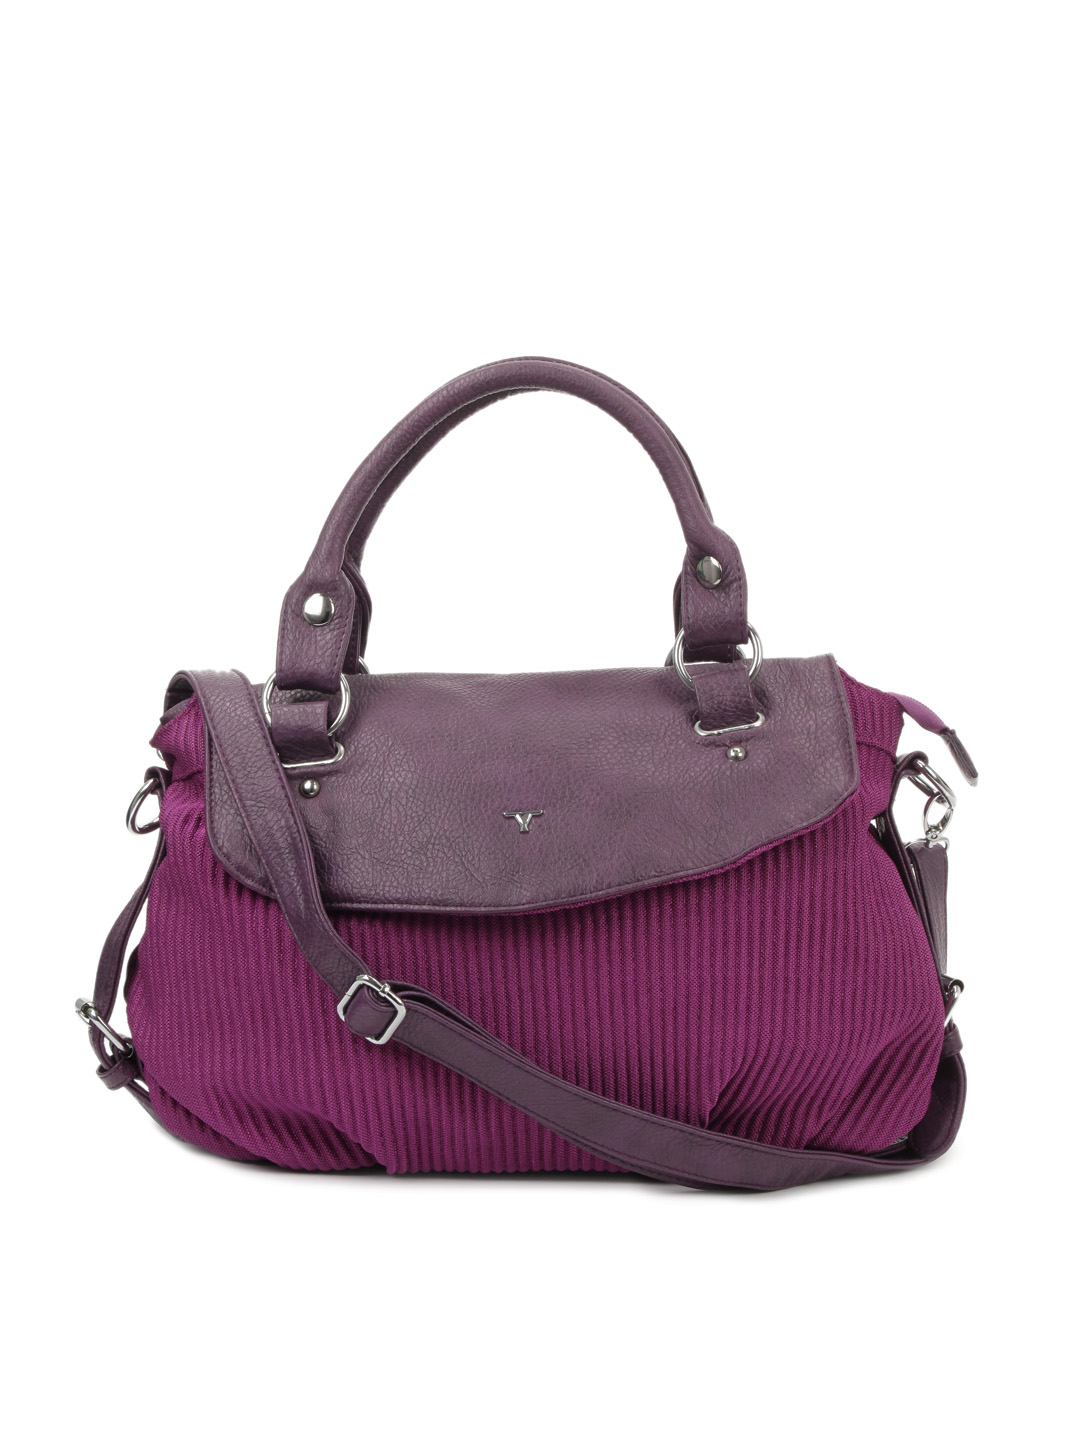 Bulchee Women Purple Handbag